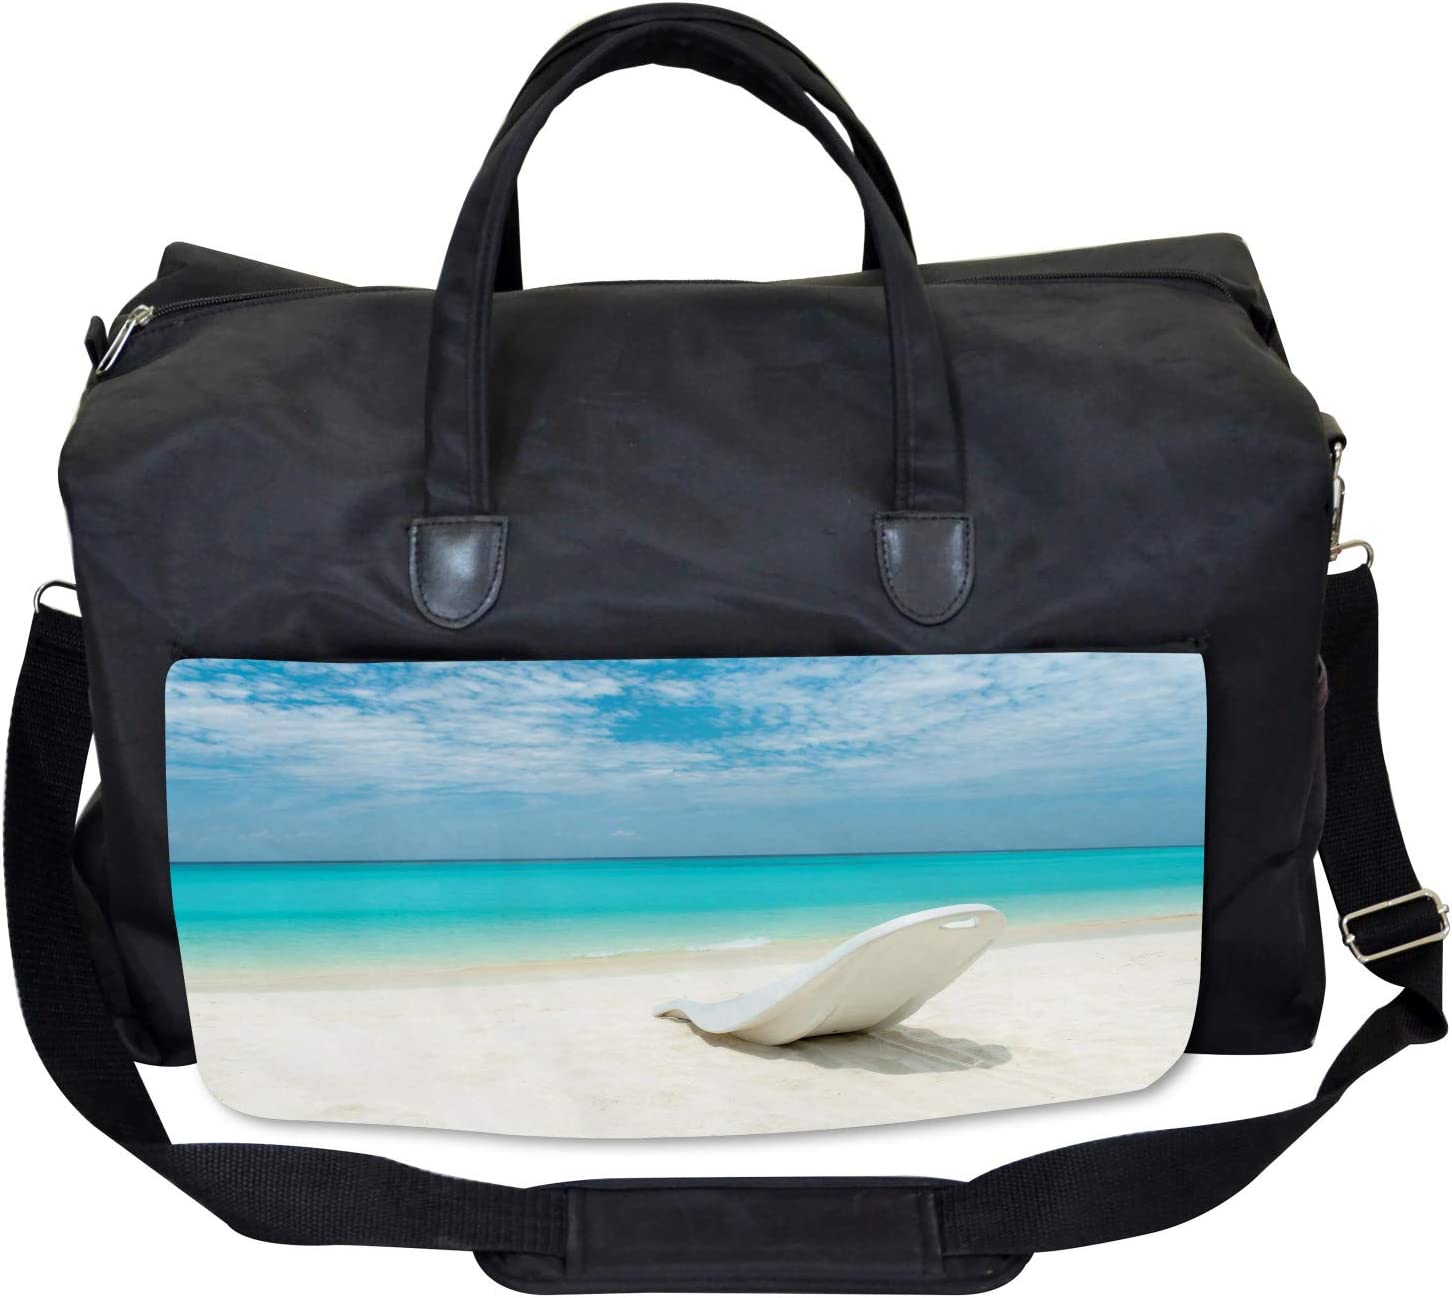 Maldives Beach Sunny Day Large Weekender Carry-on Ambesonne Travel Gym Bag